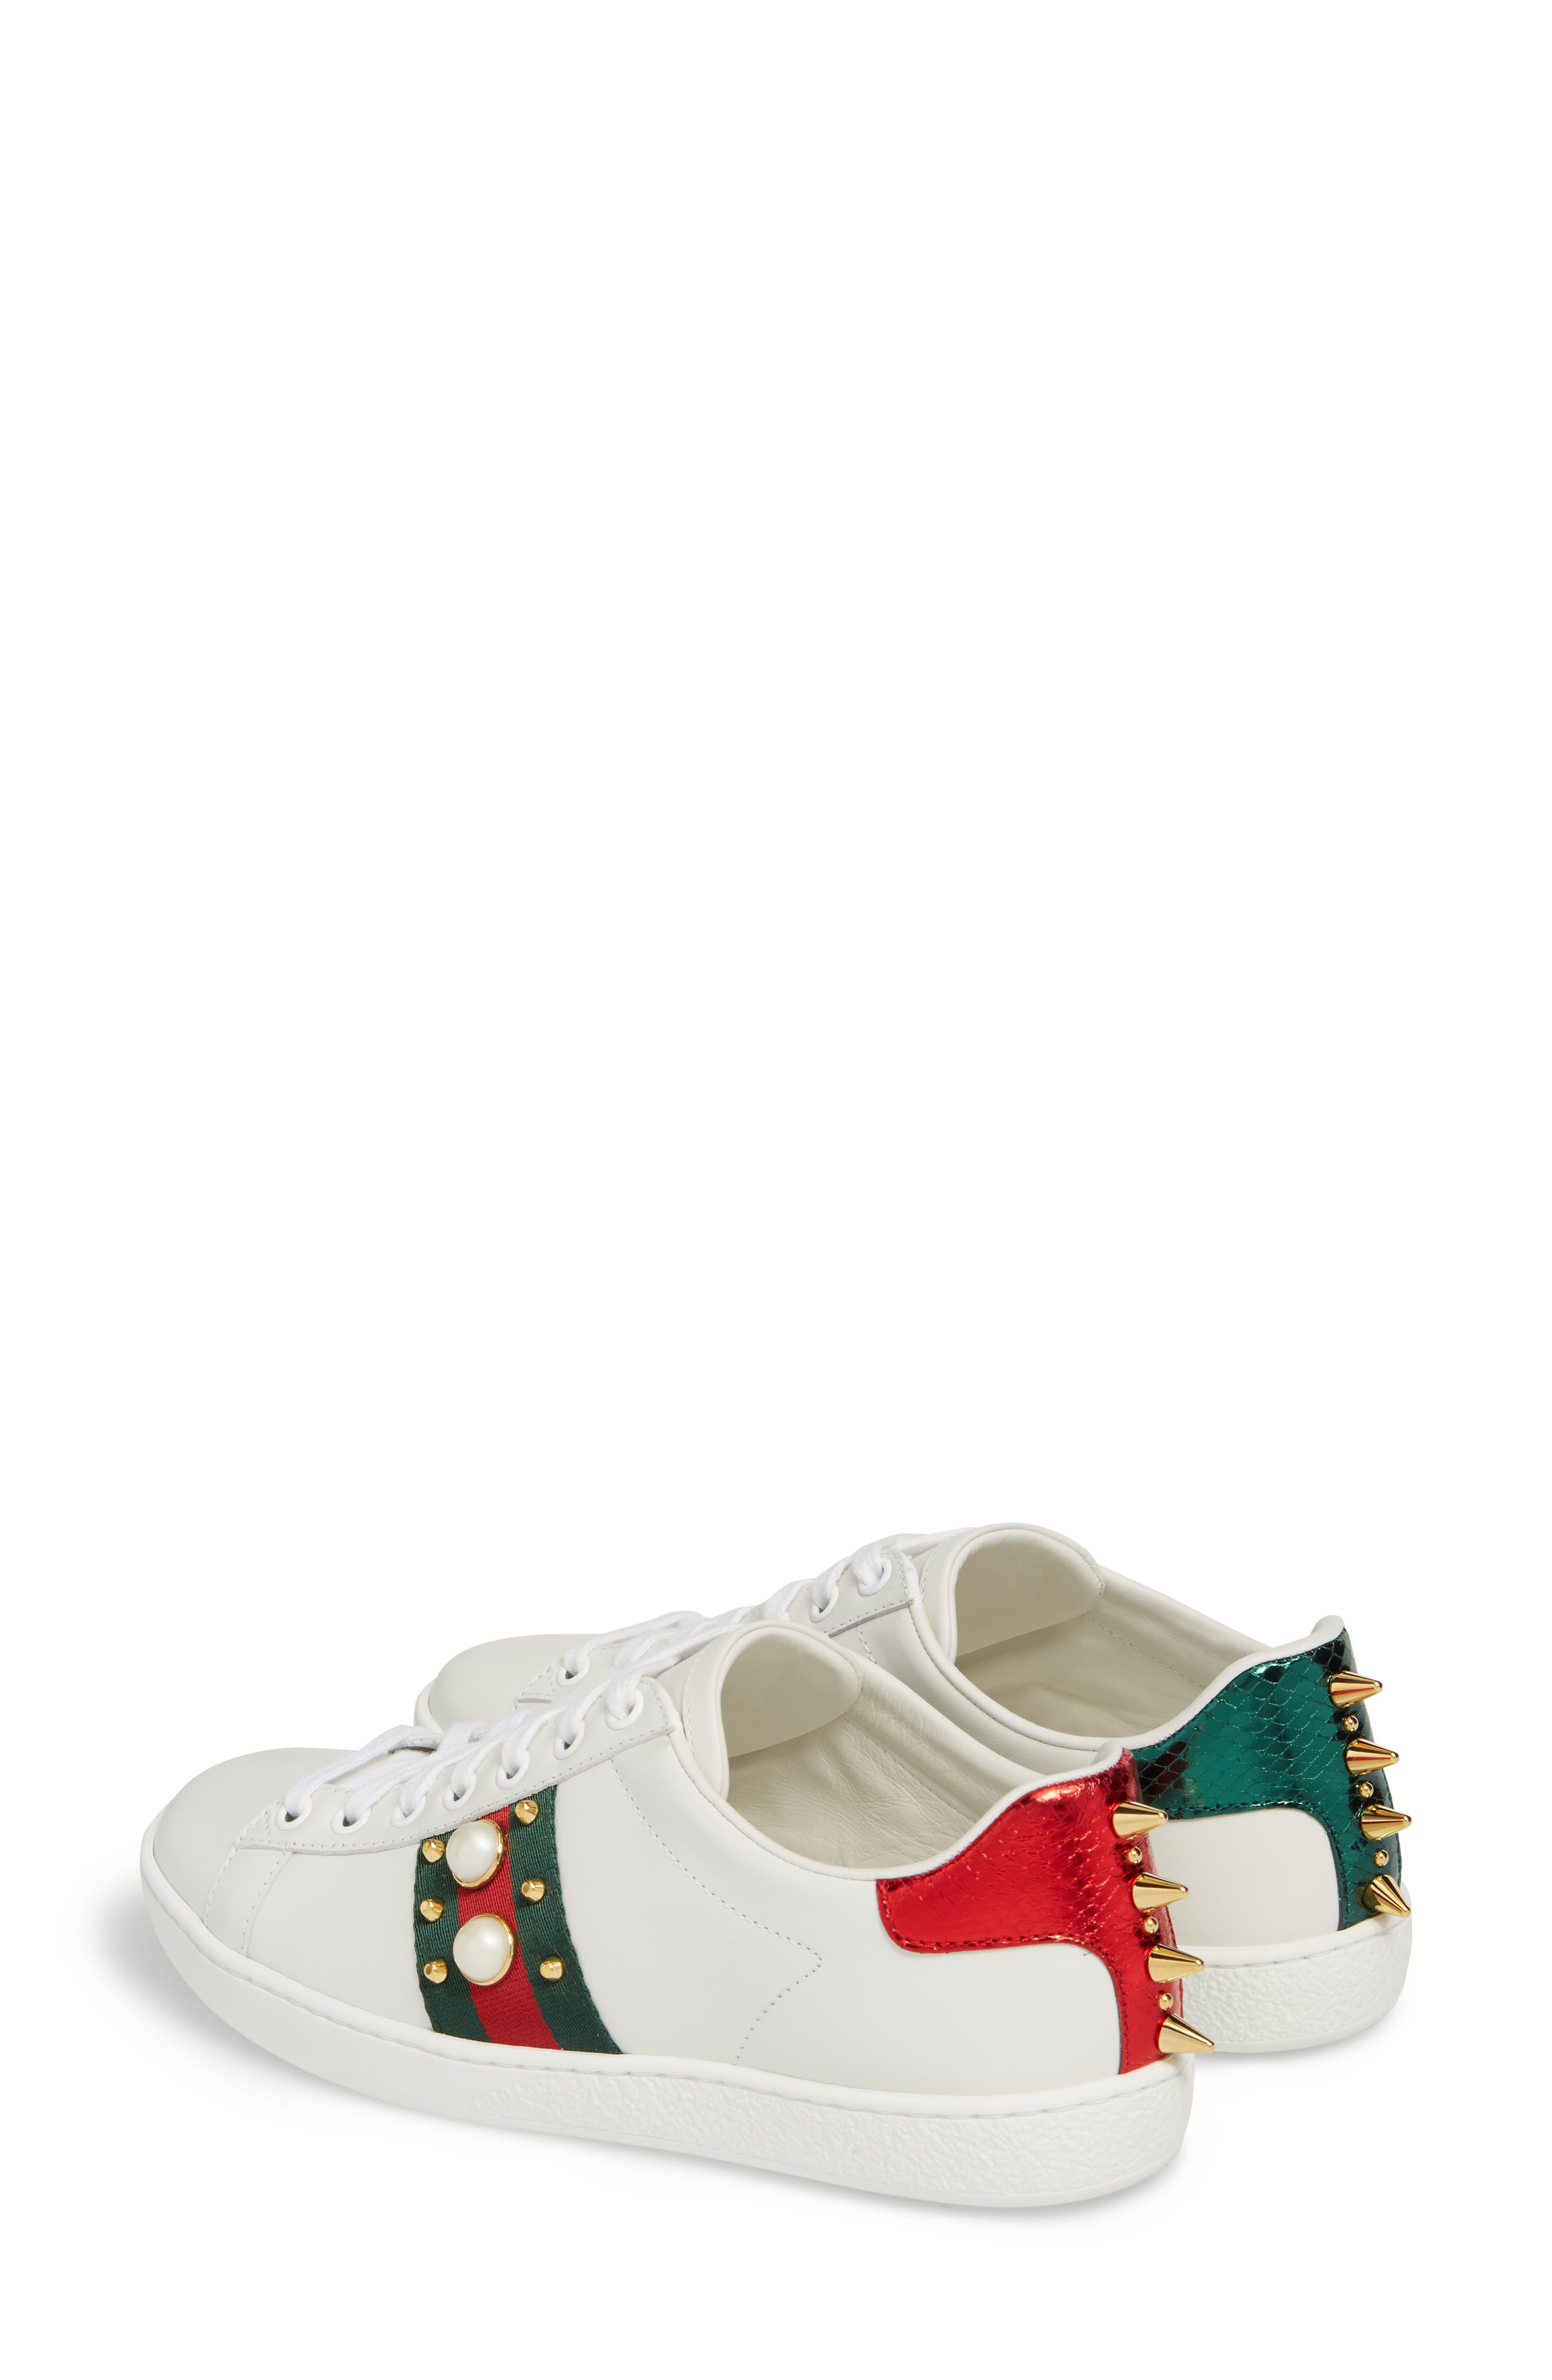 GUCCI, New Ace Low Top Sneaker, Alternate thumbnail 2, color, WHITE/ RED